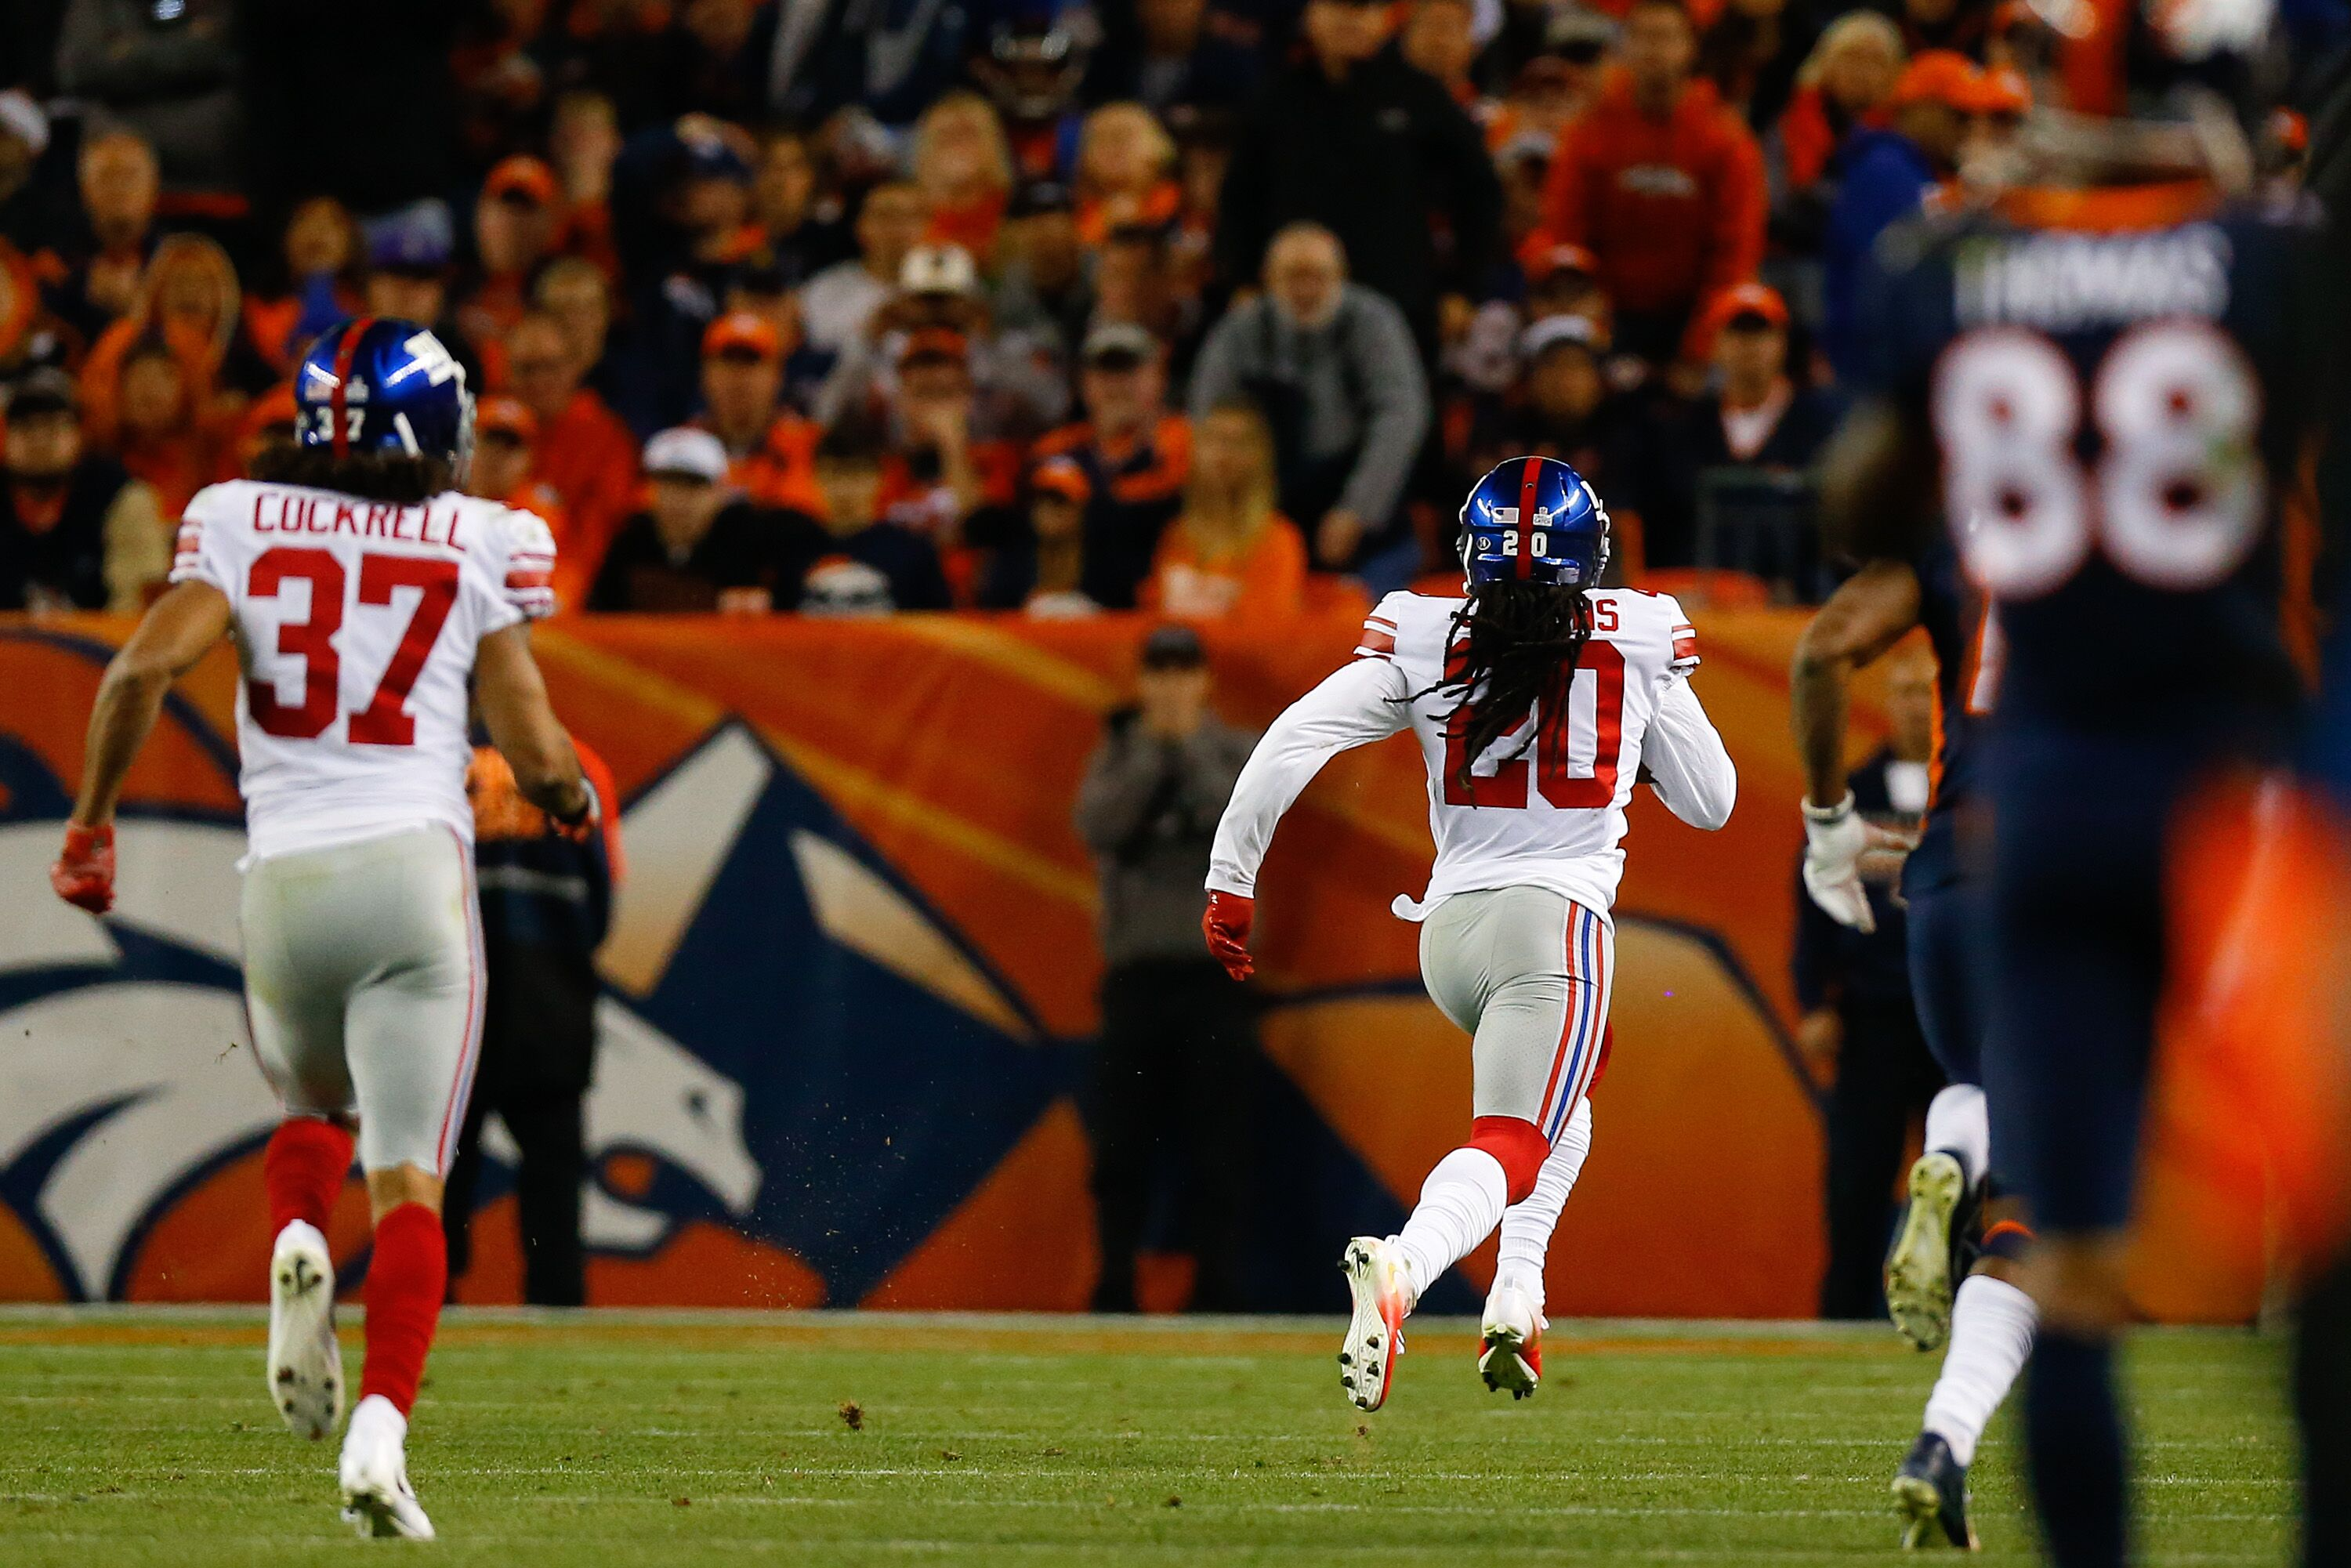 861768352-new-york-giants-v-denver-broncos.jpg